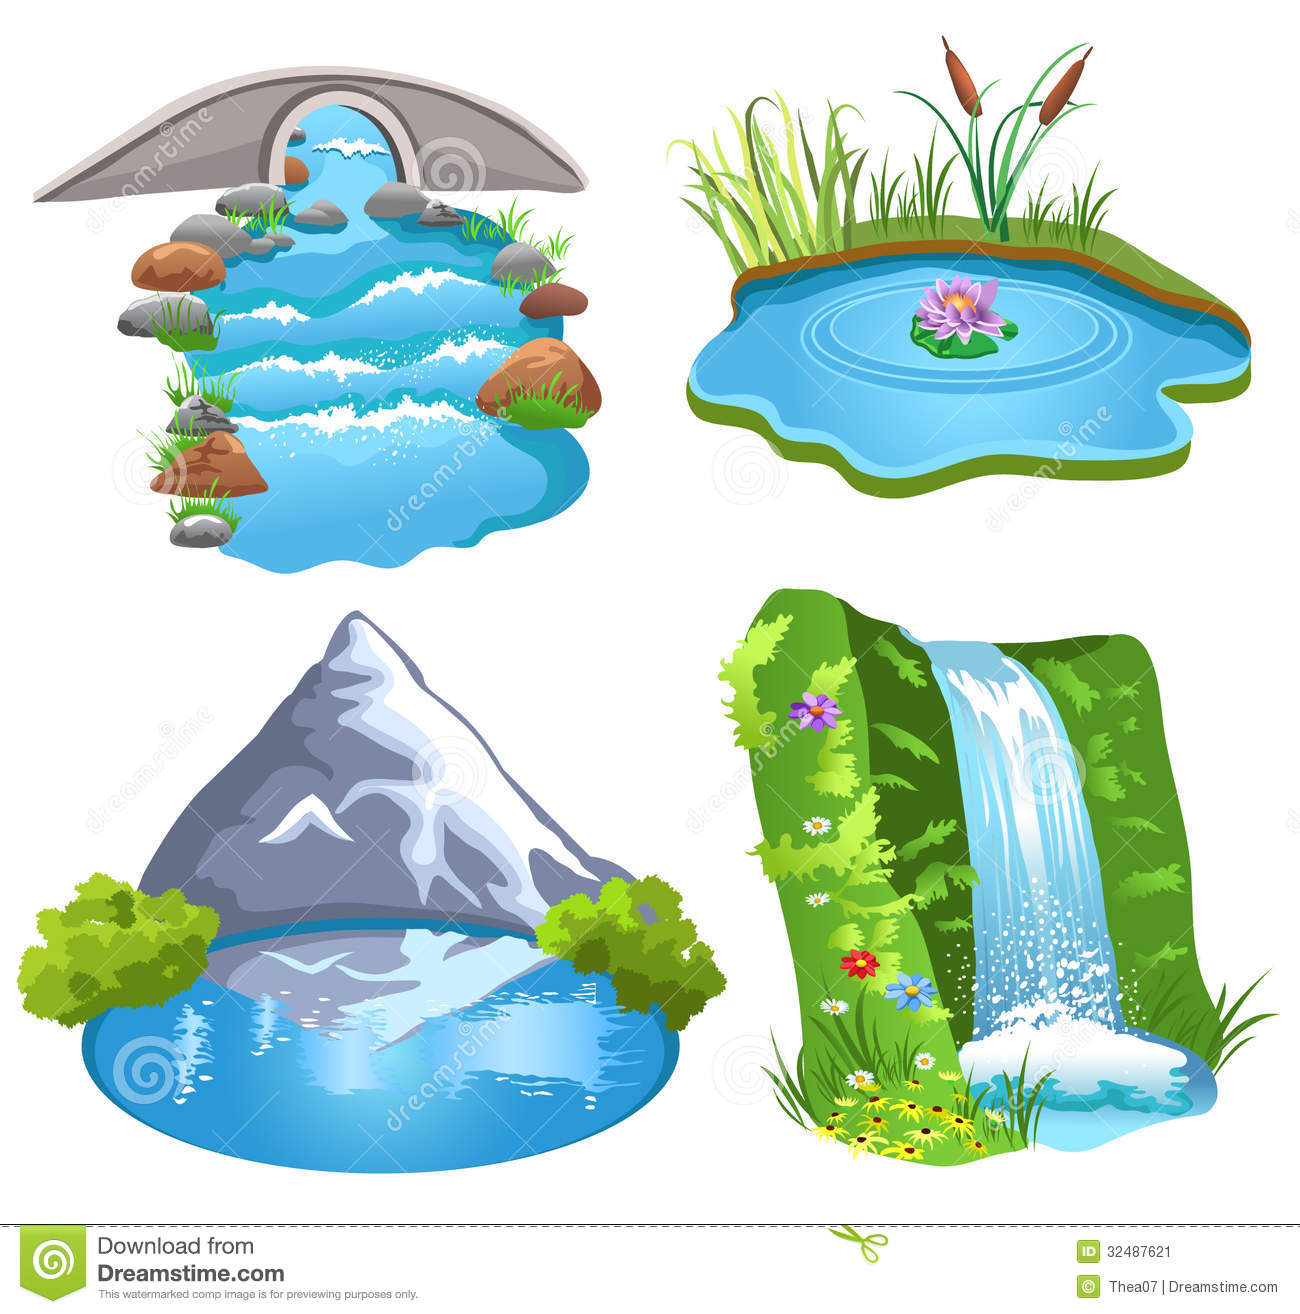 River water clipart clip royalty free Lake Water Clipart - Clipart Kid clip royalty free